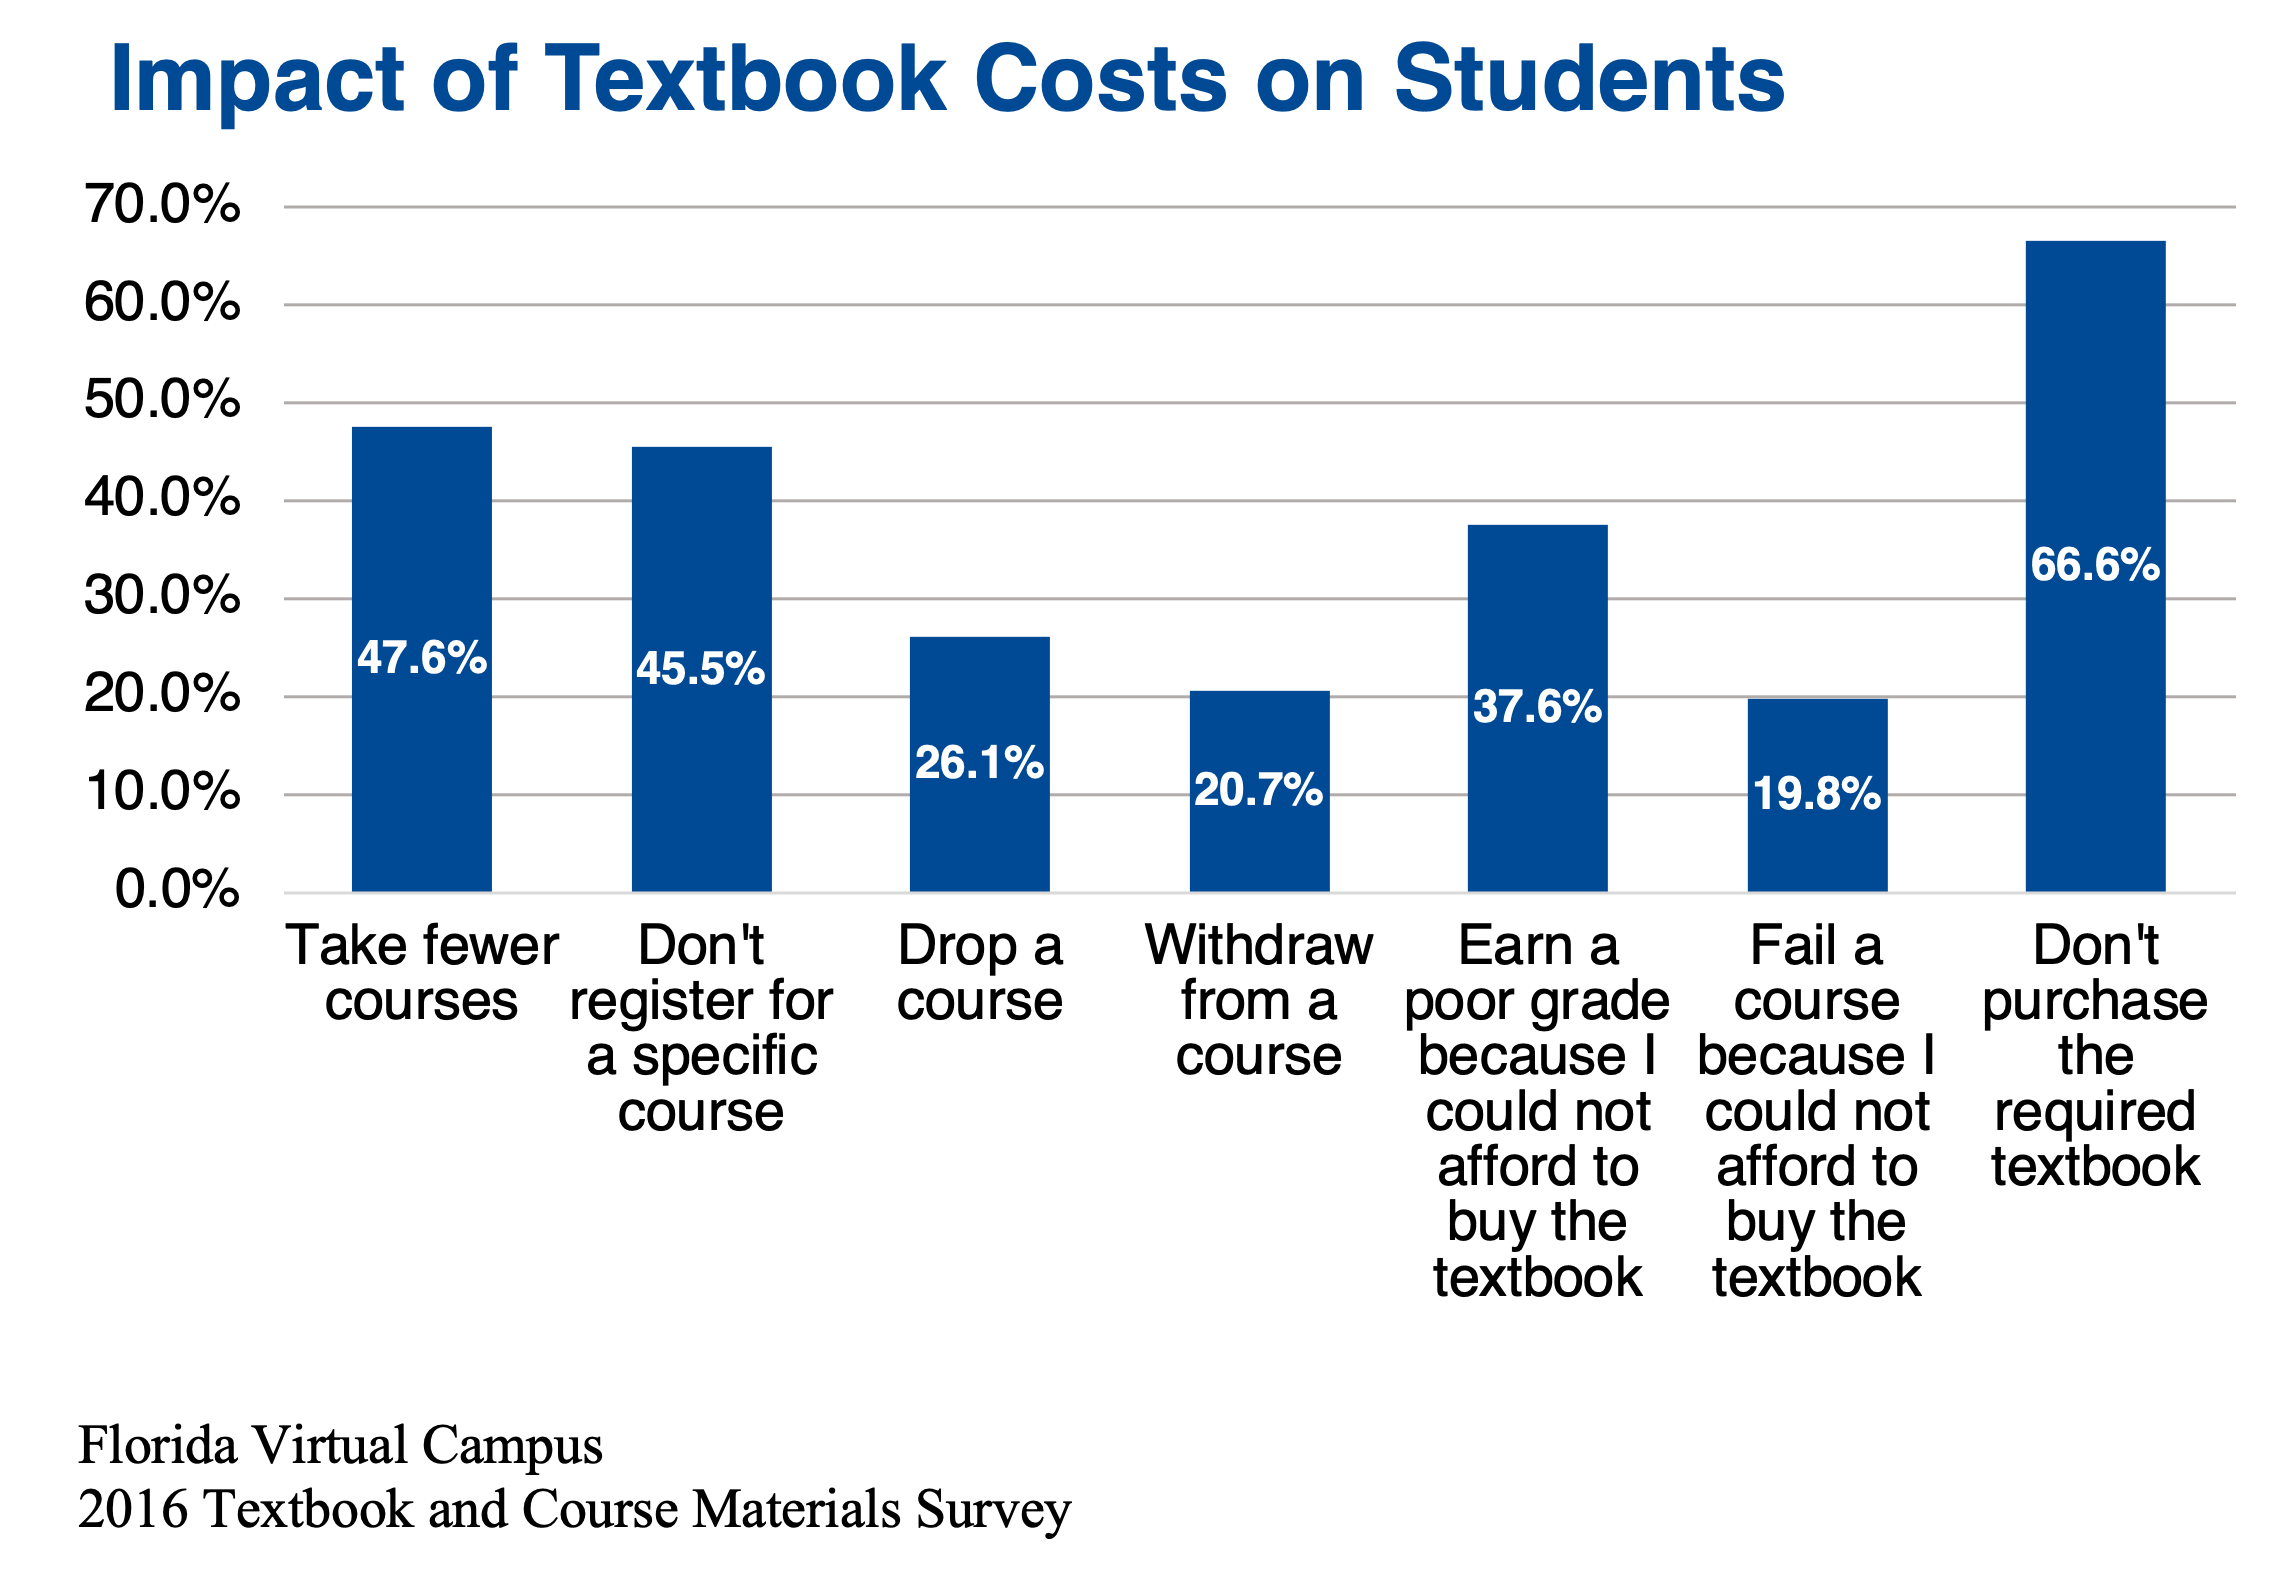 Impact of Textbook Costs on Students